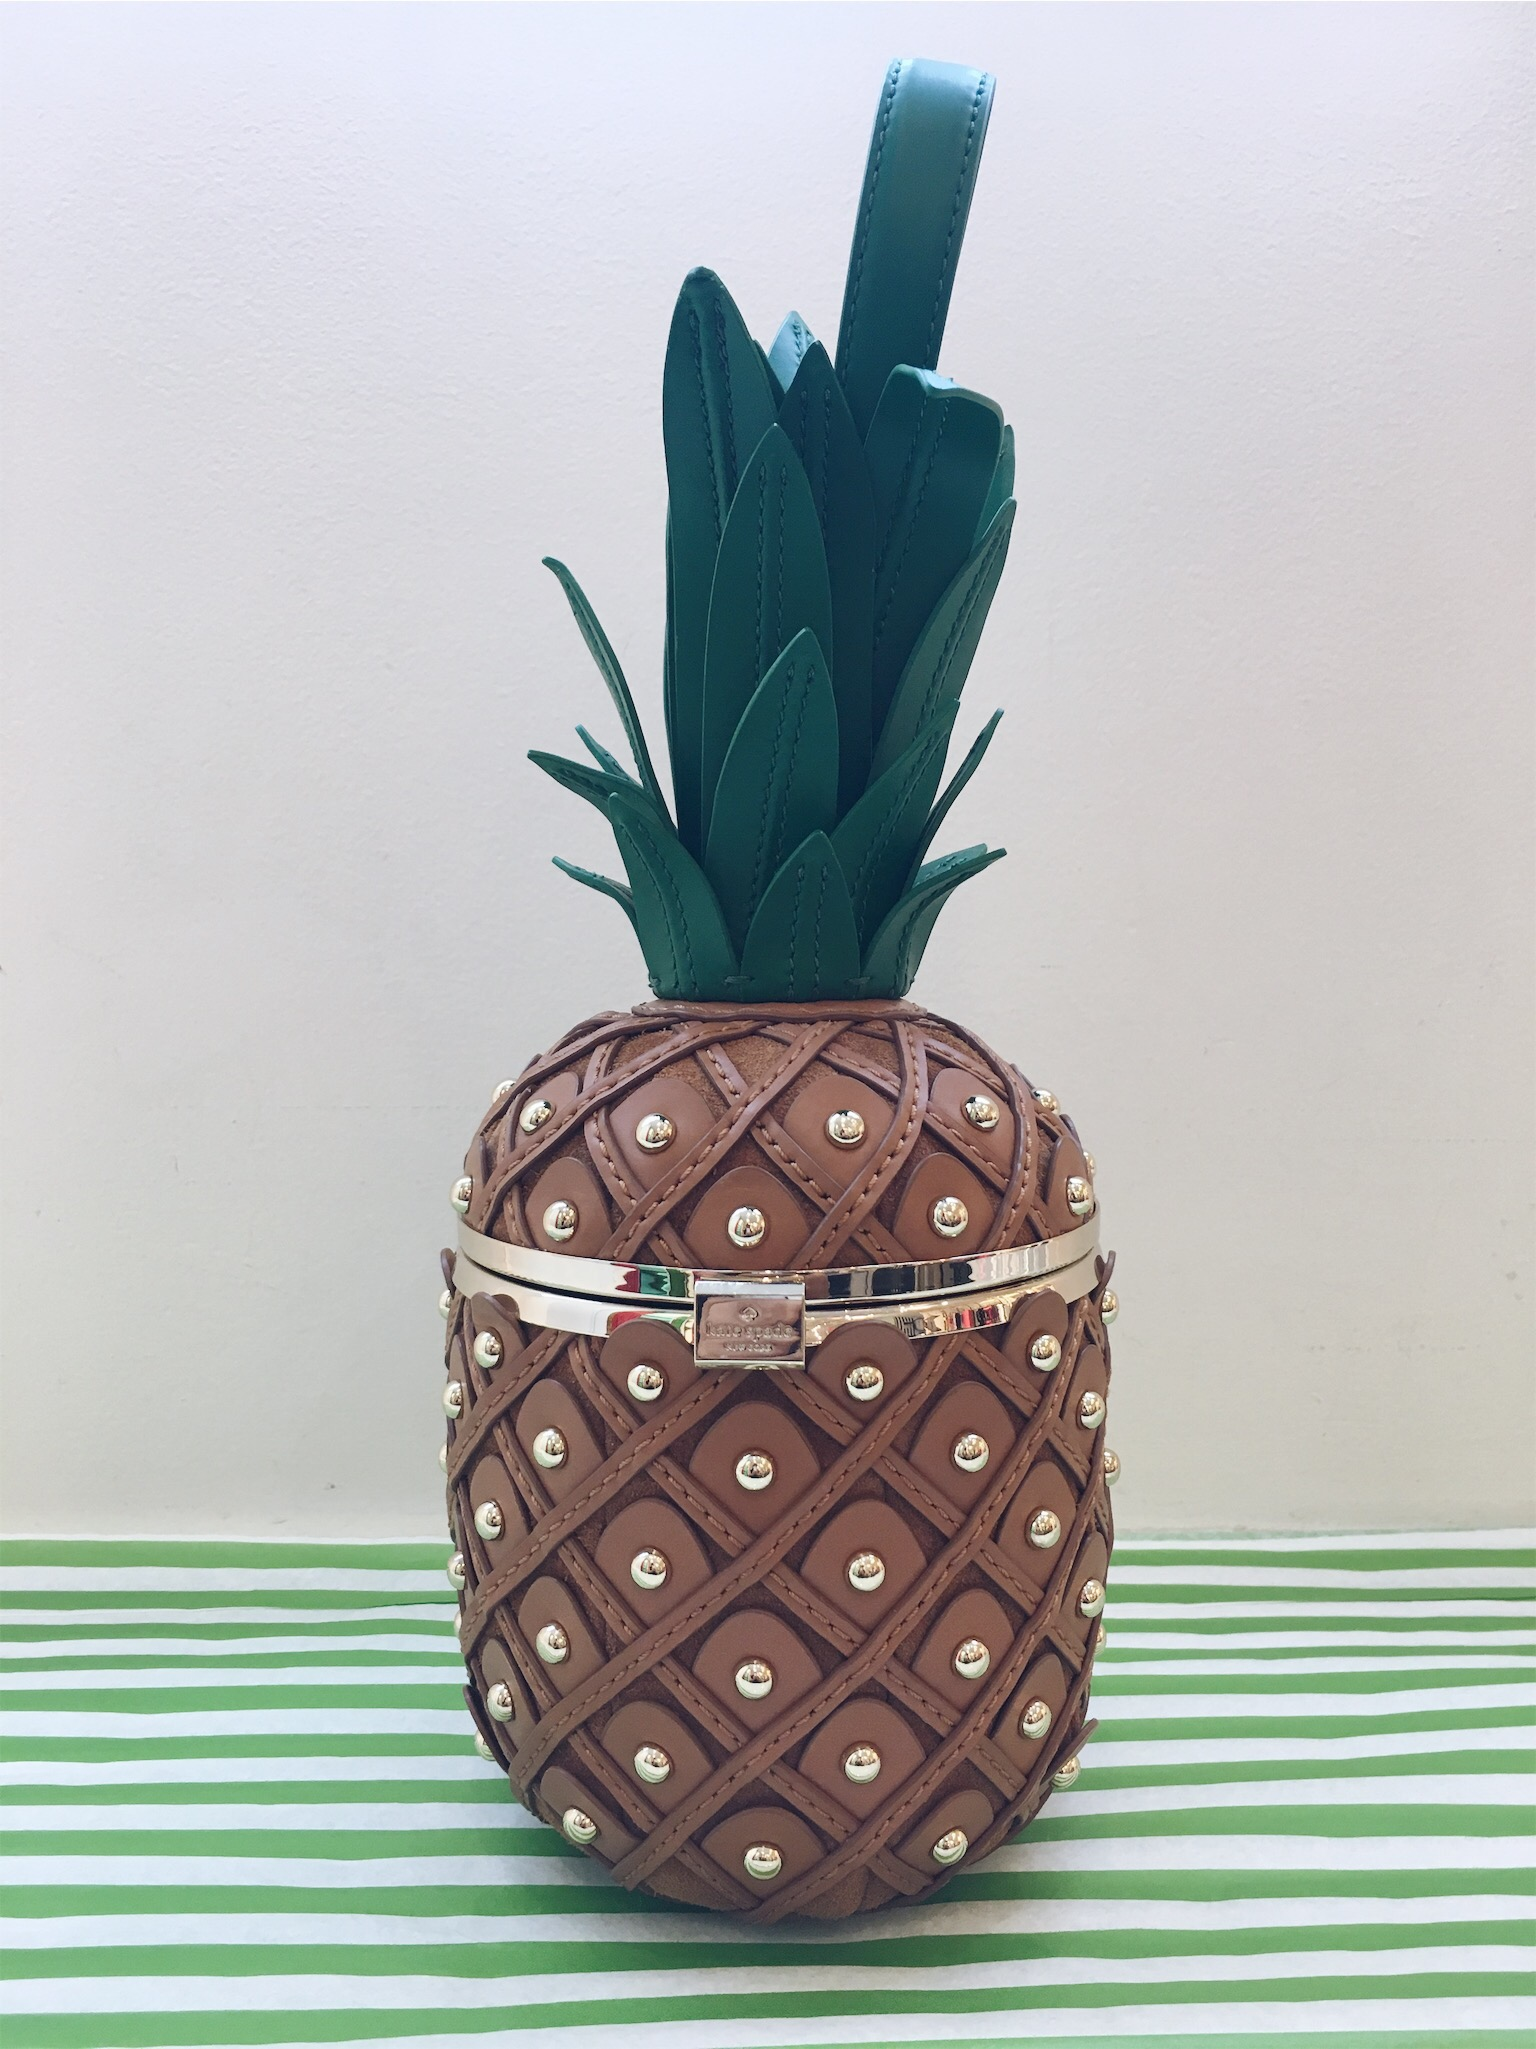 This fabulous pineapple bag is sold out EVERYWHERE!